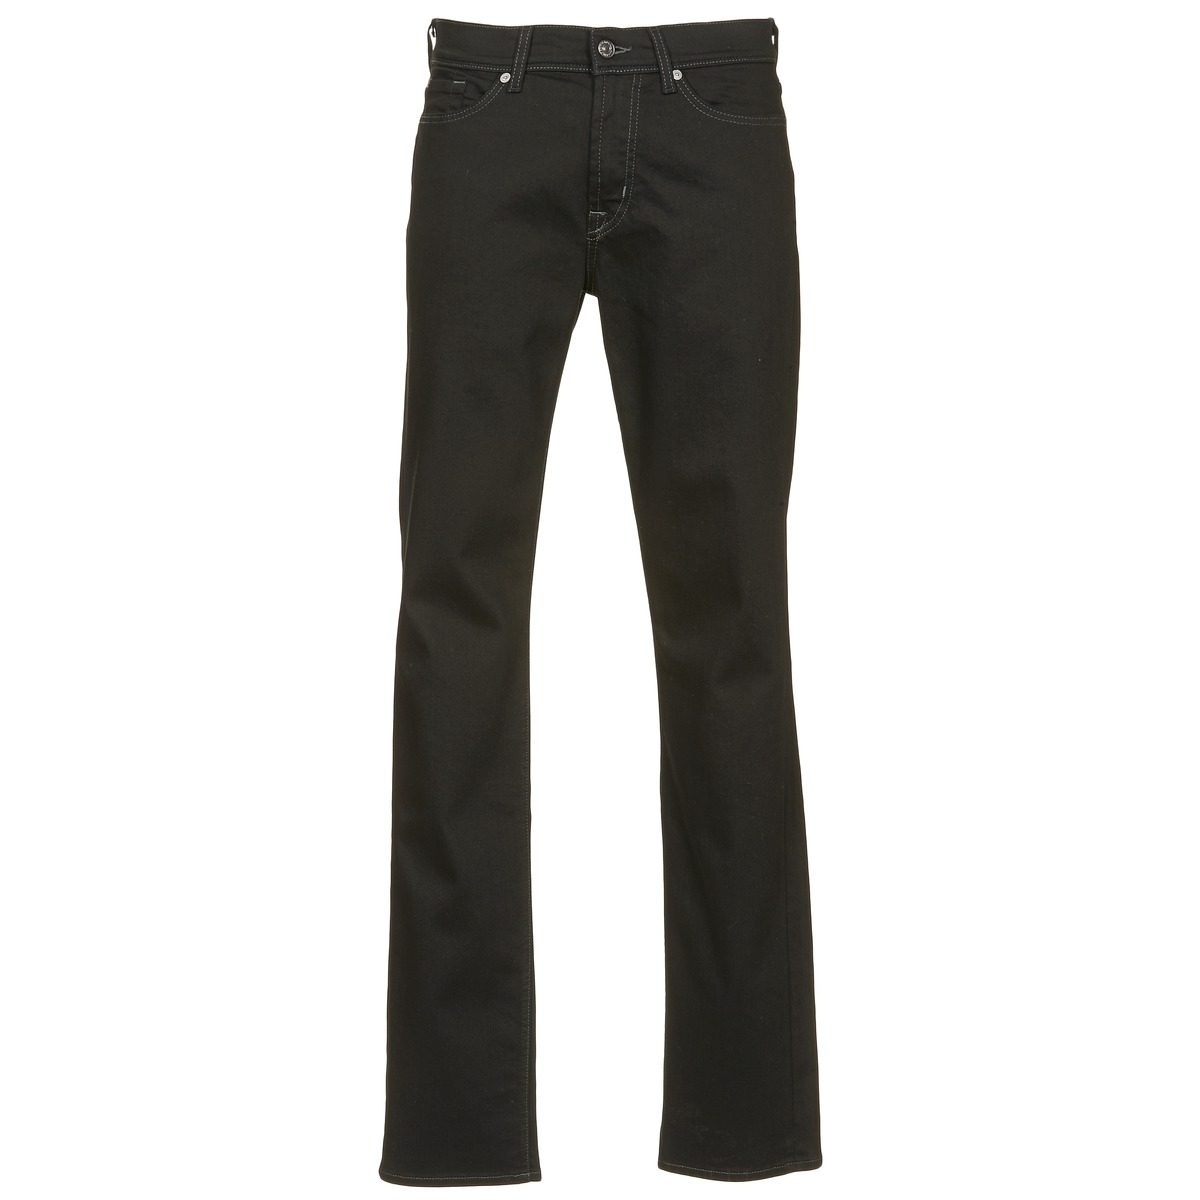 7 for all Mankind SLIMMY LUXE PERFORMANCE Noir